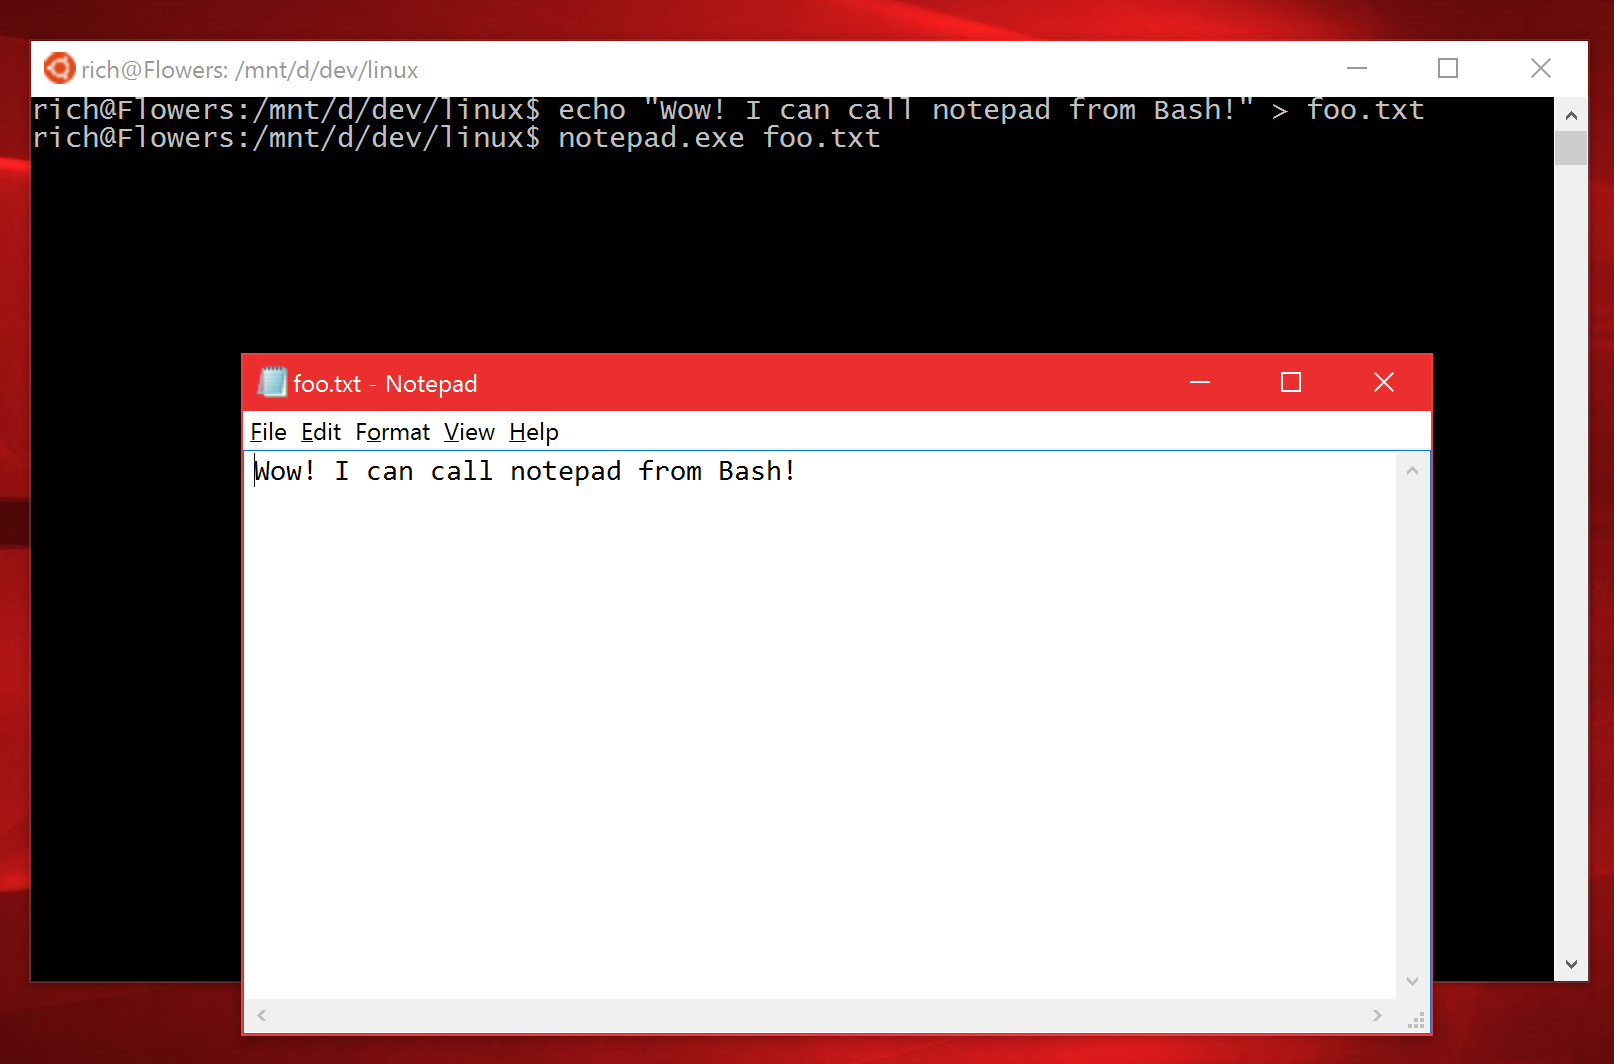 Interop between Windows and Bash | Windows Command Line Tools For